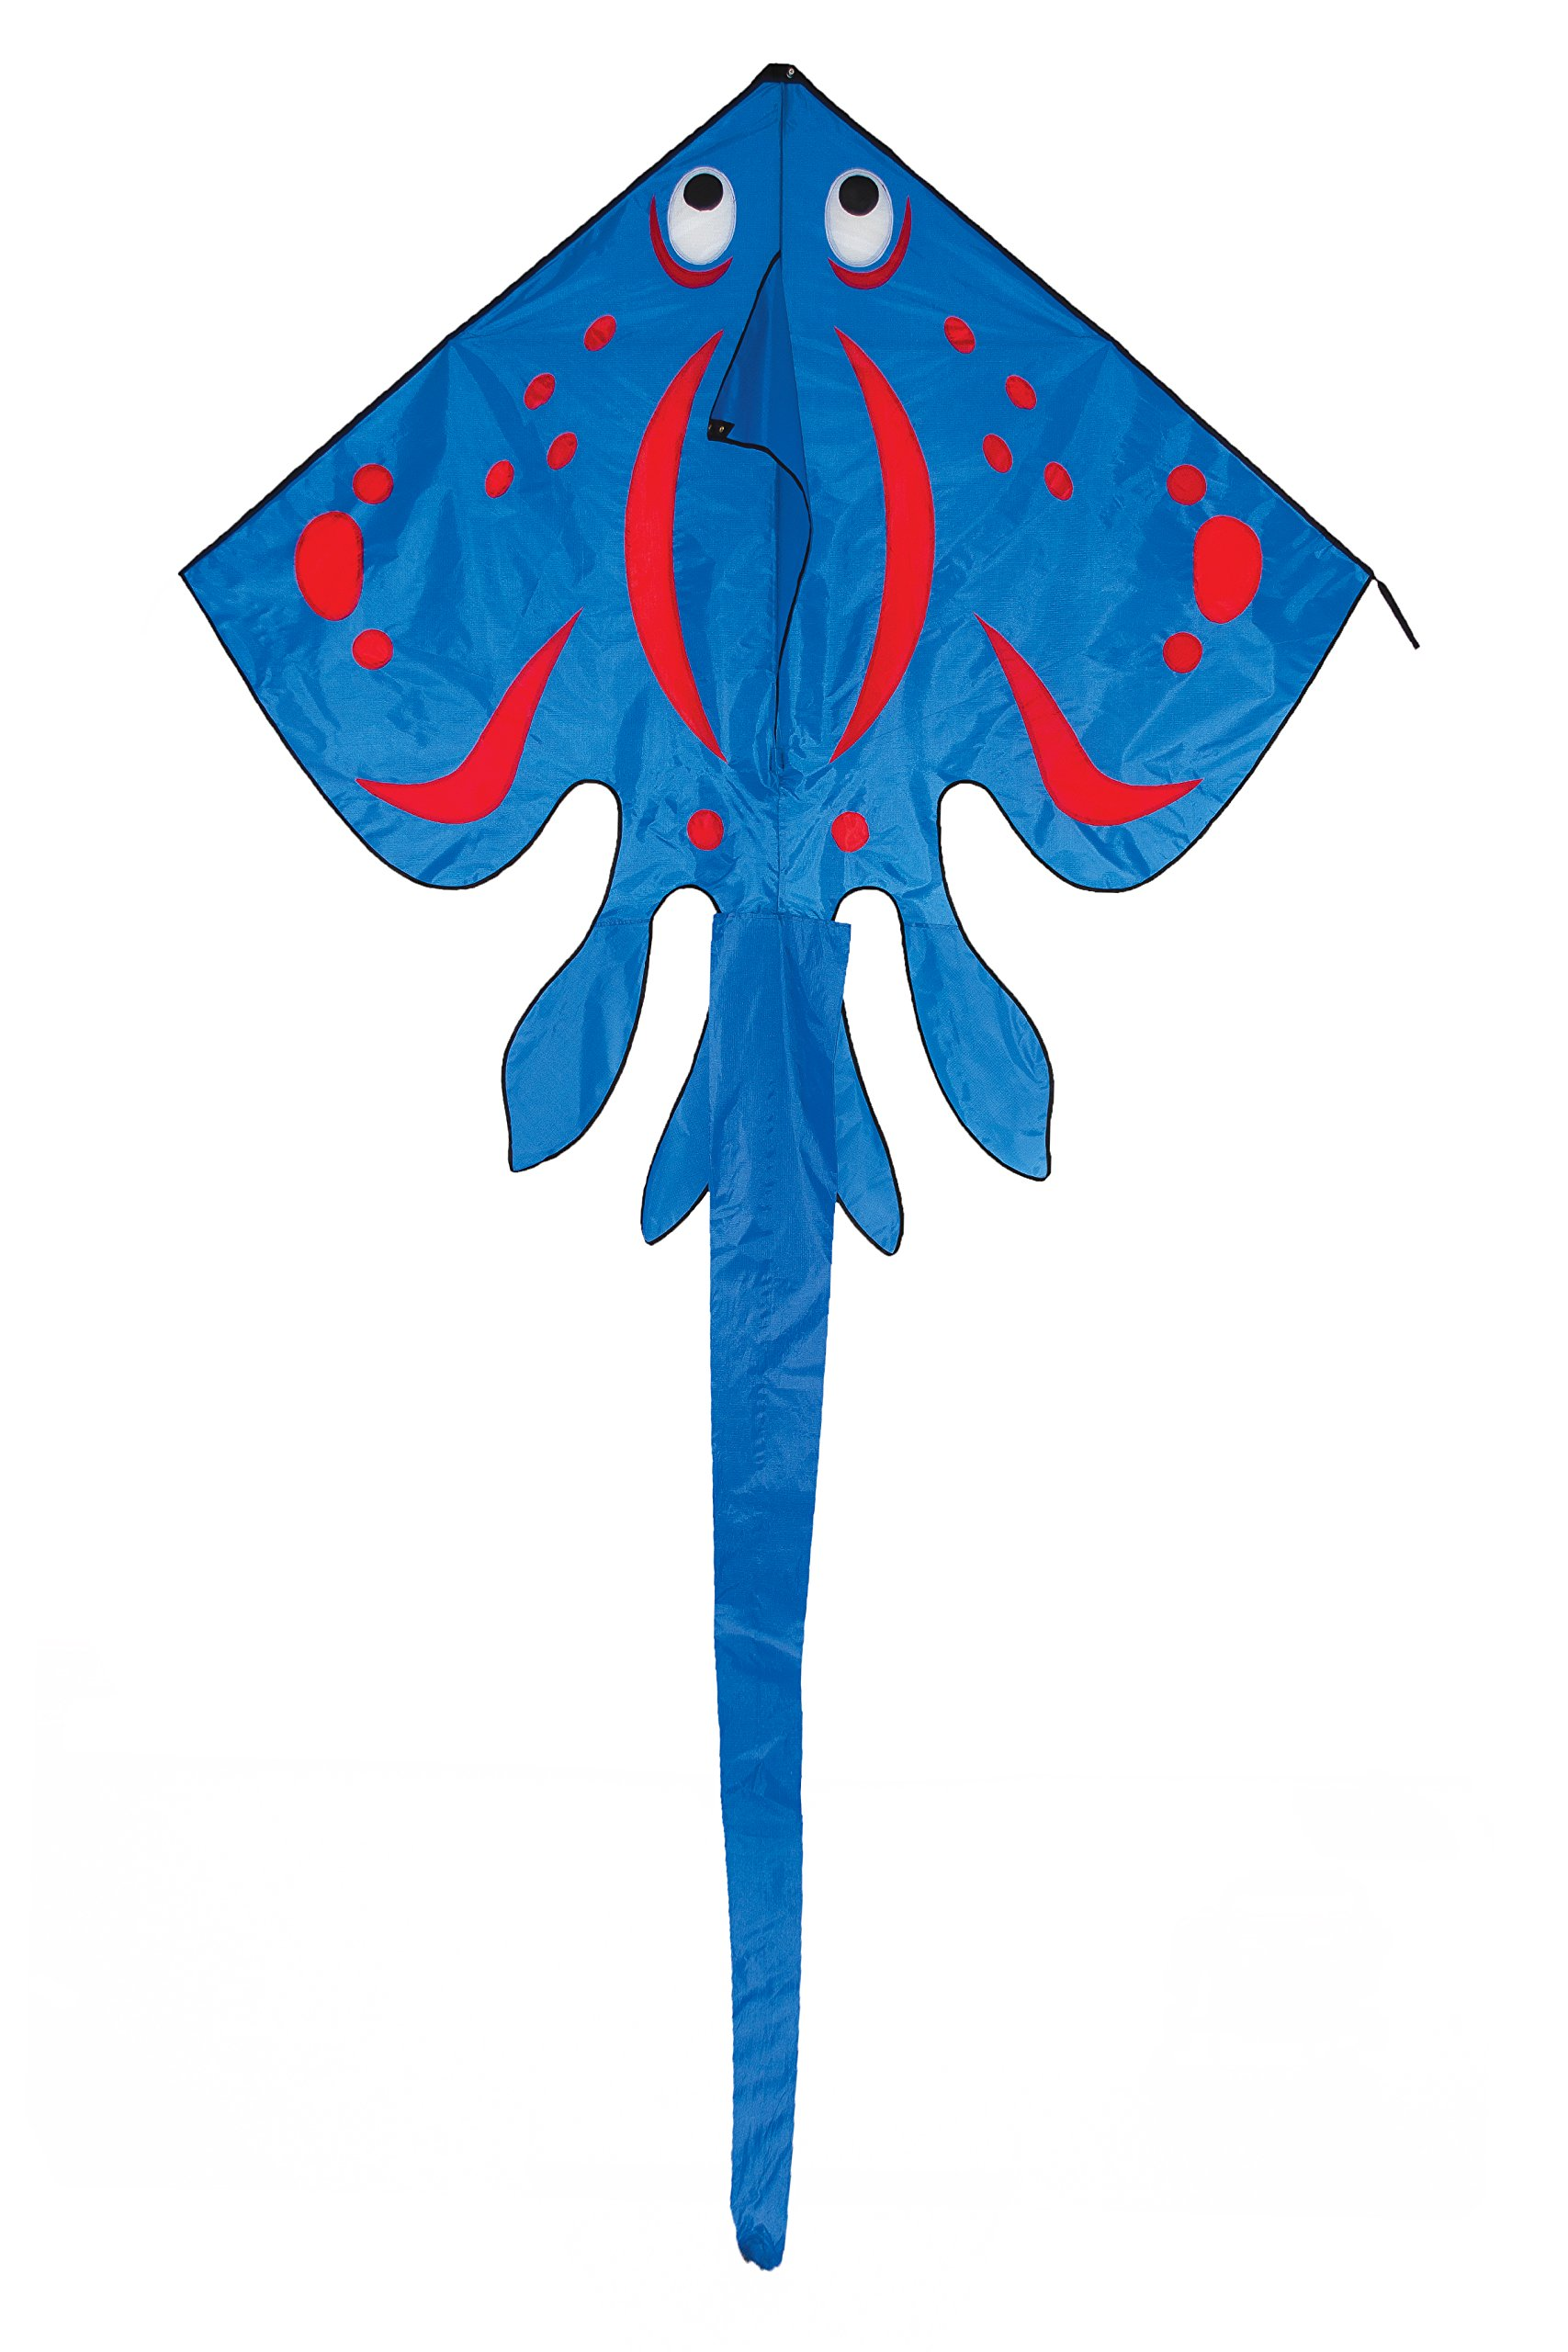 In the Breeze Blue Stingray Kite - Large Single Line Kite - Ripstop Fabric - Kite Line and Bag Included